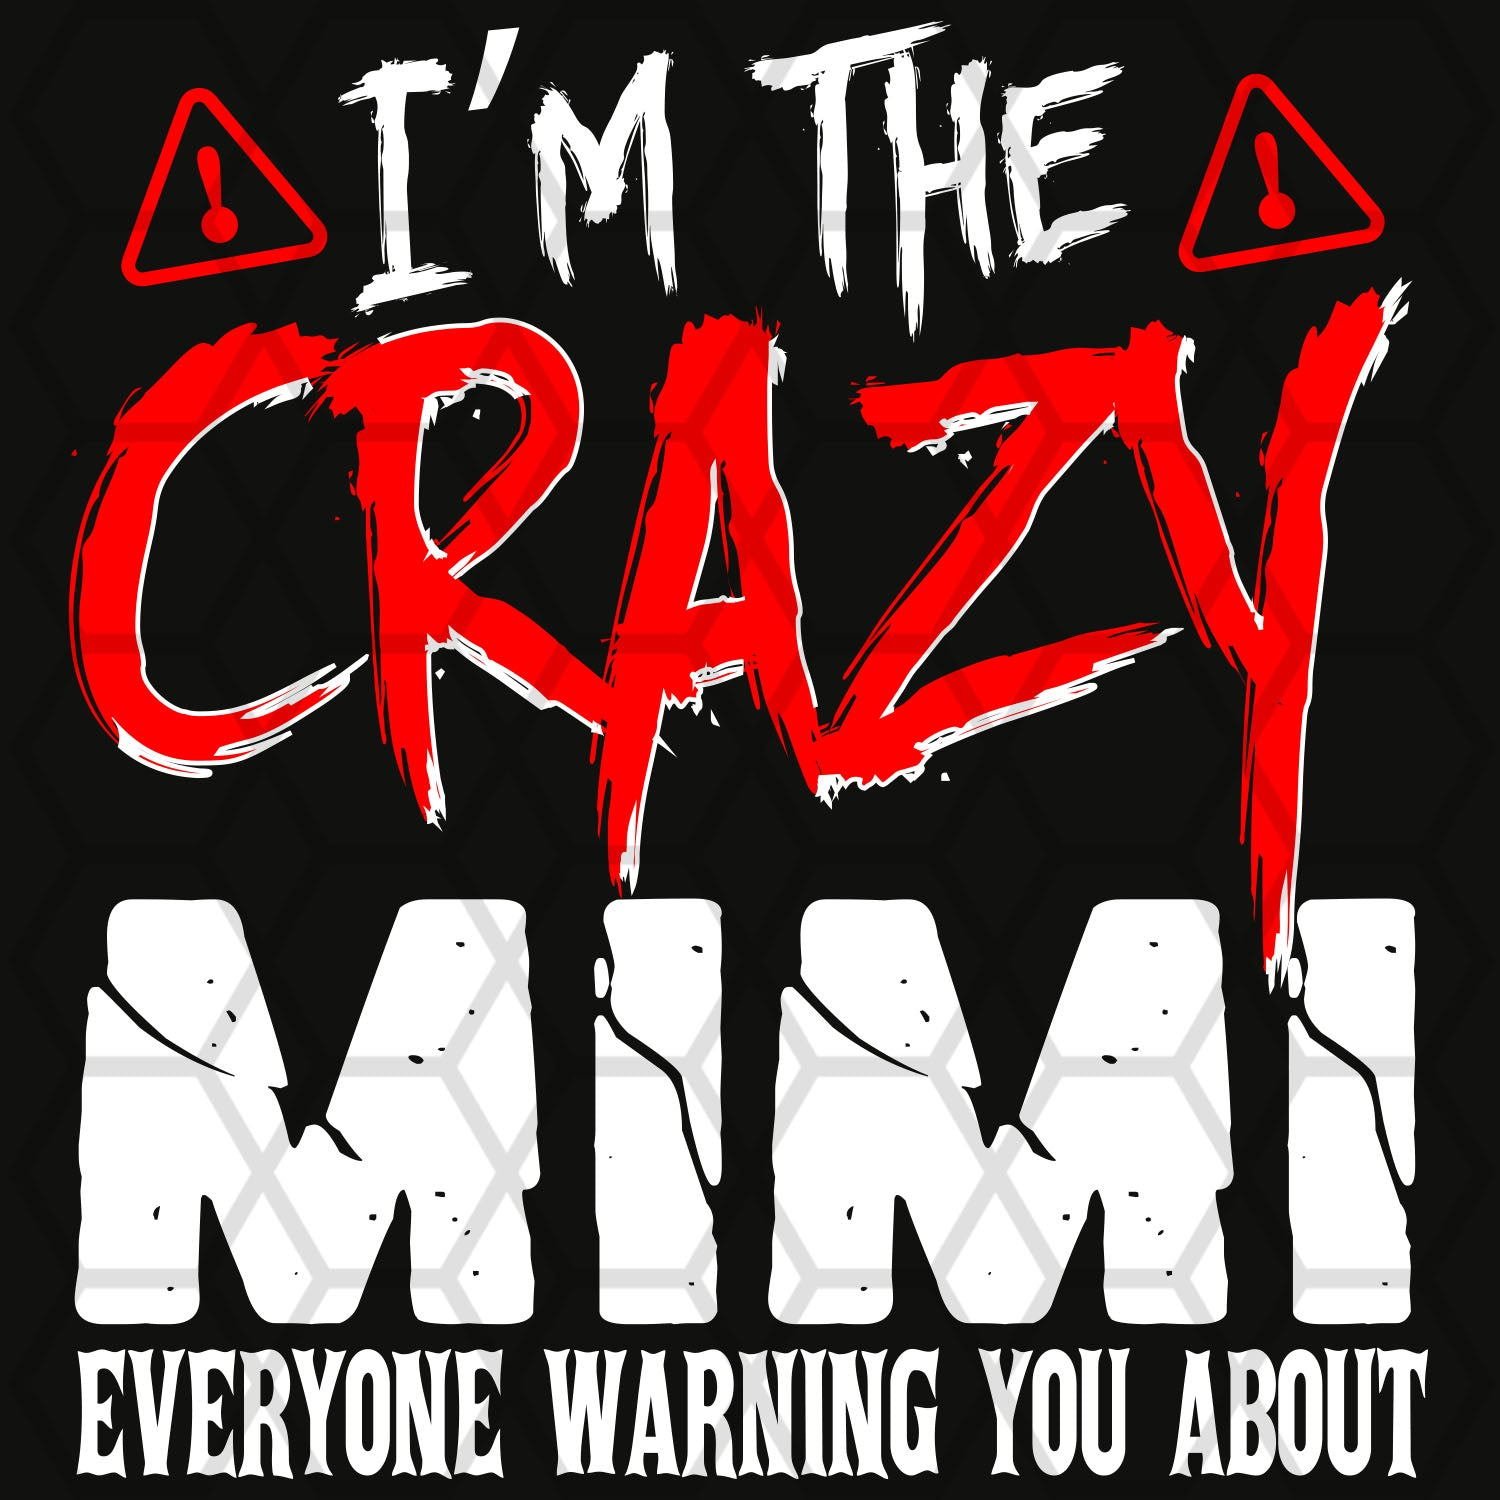 I'm the crazy mimi,  mimi svg, mimi gift, mimi shirt, mimi life, gift for mimi, best mimi ever, family svg, family shirt,family gift,trending svg, Files For Silhouette, Files For Cricut, SVG, DXF, EPS, PNG, Instant Download